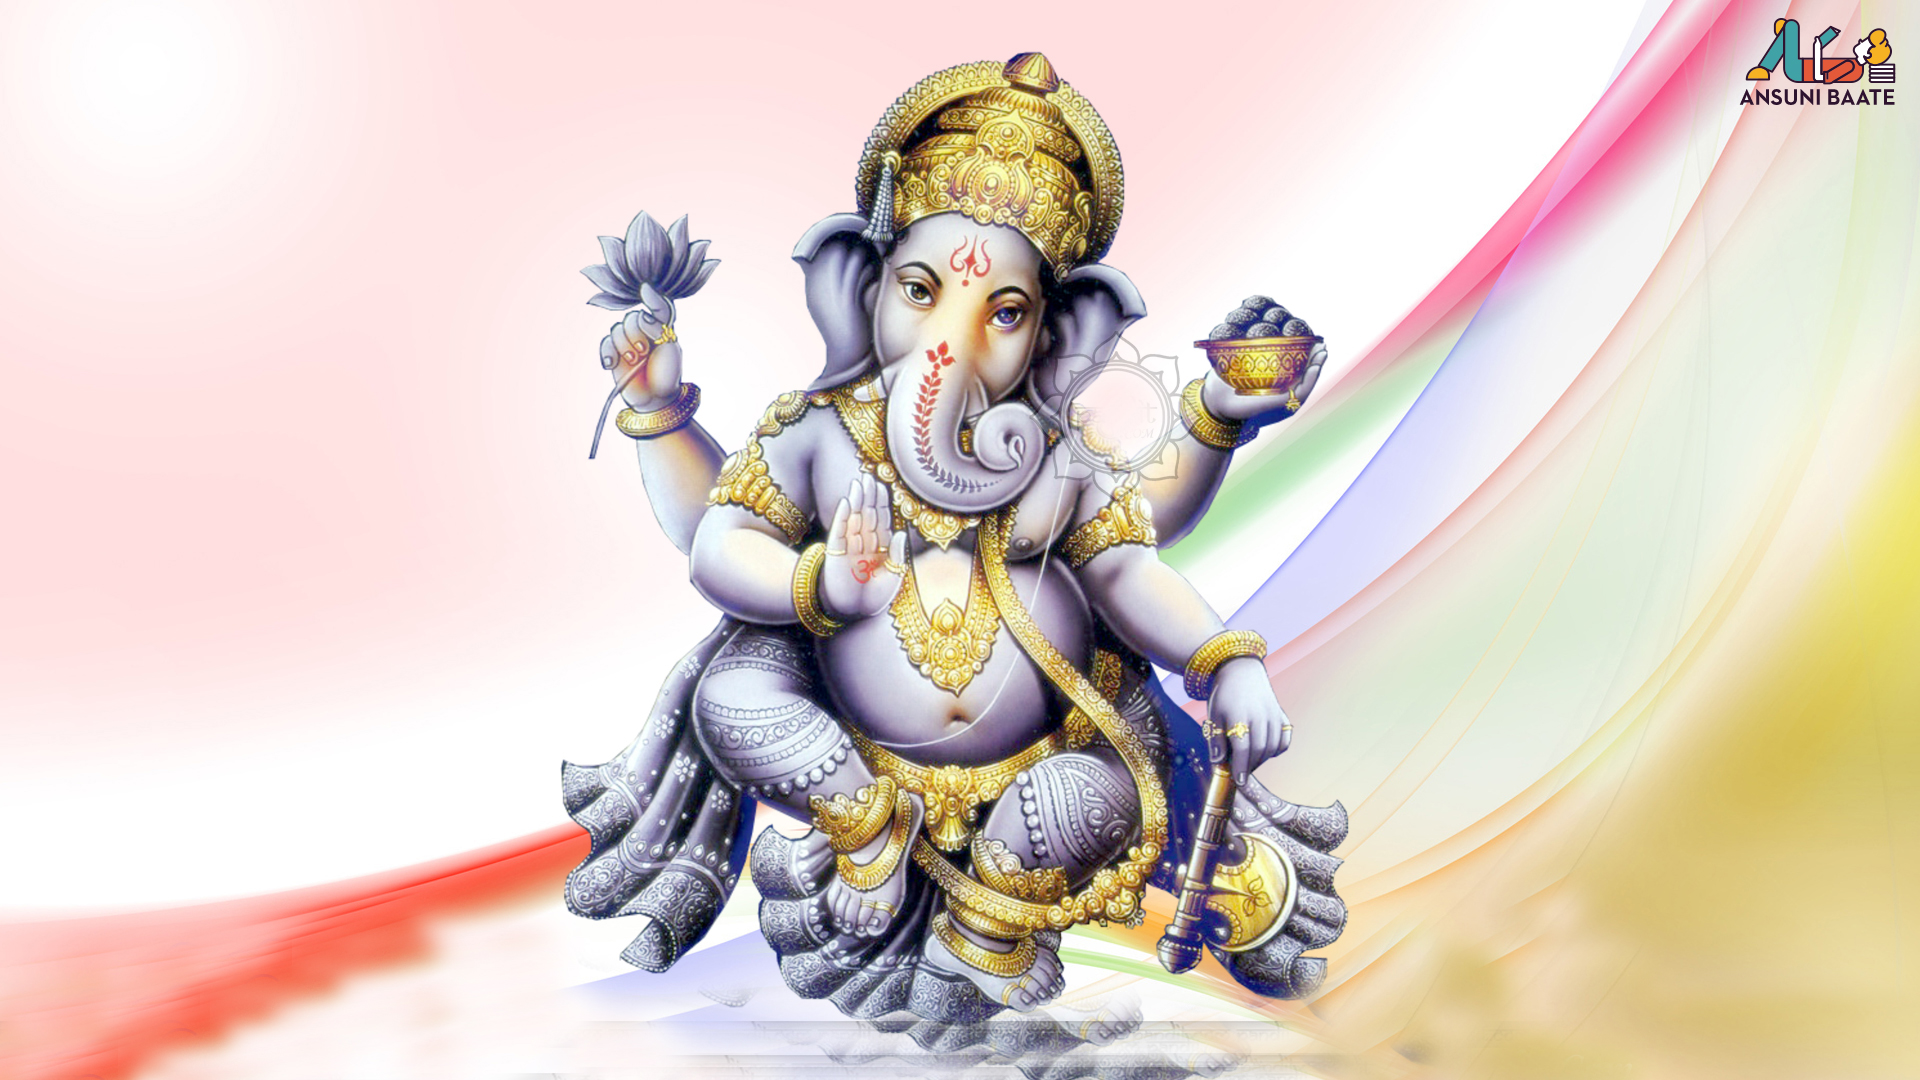 Ganesh Wallpaper For Mobile,ganesh Wallpaper Download - Edit Ganesh Chaturthi Invitation , HD Wallpaper & Backgrounds